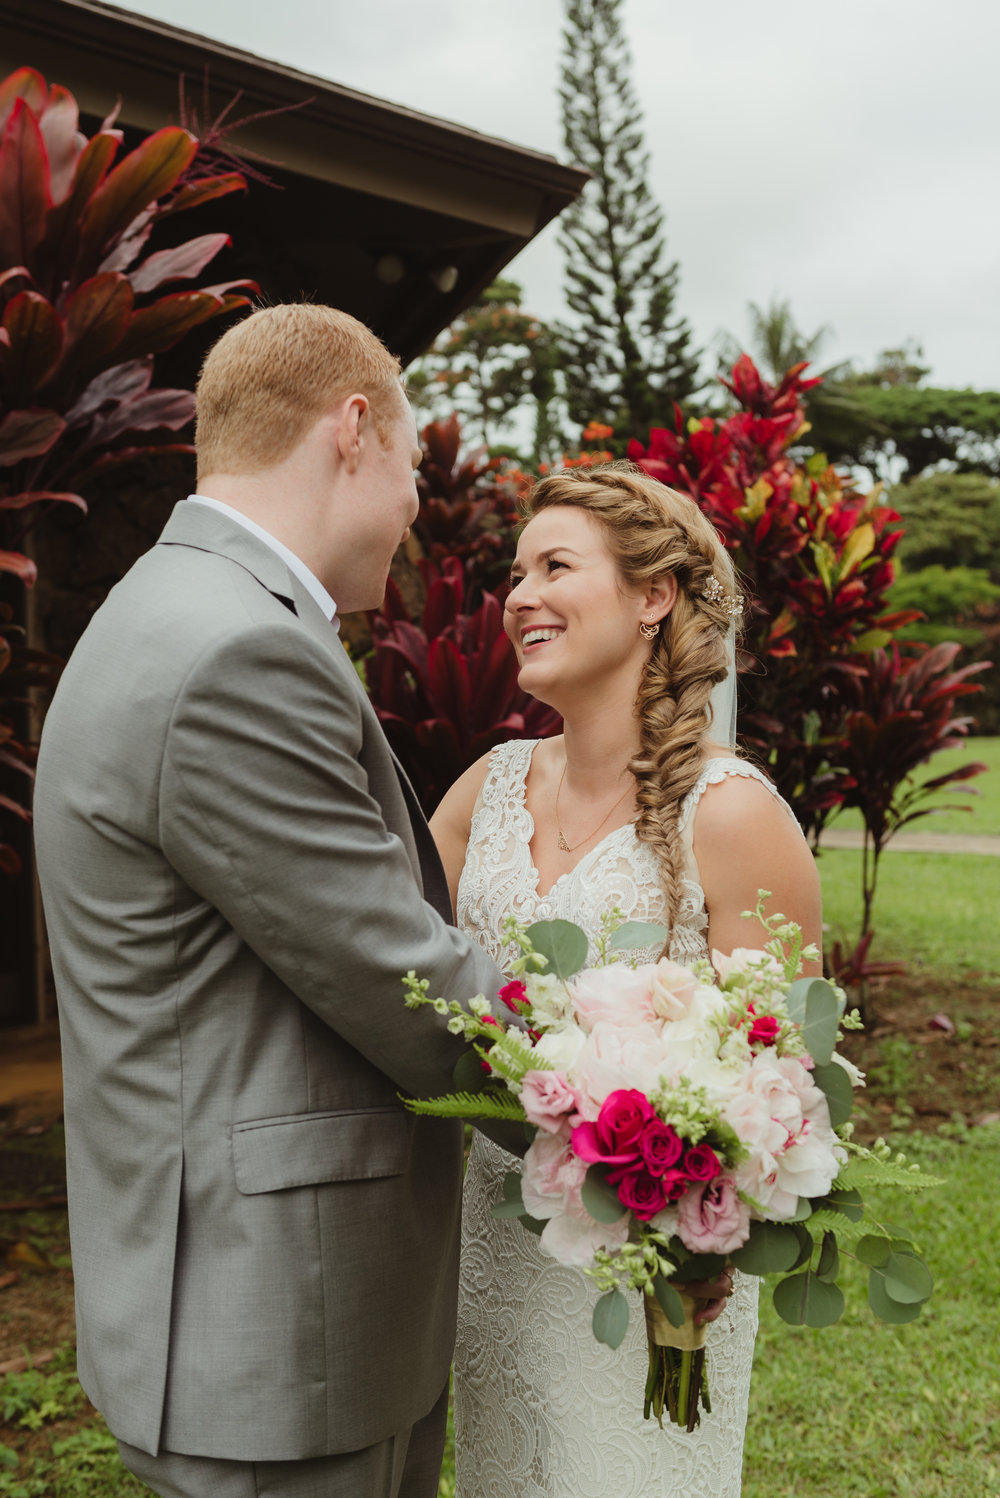 21-kauai-destination-wedding-photographer-vivianchen-0136.jpg